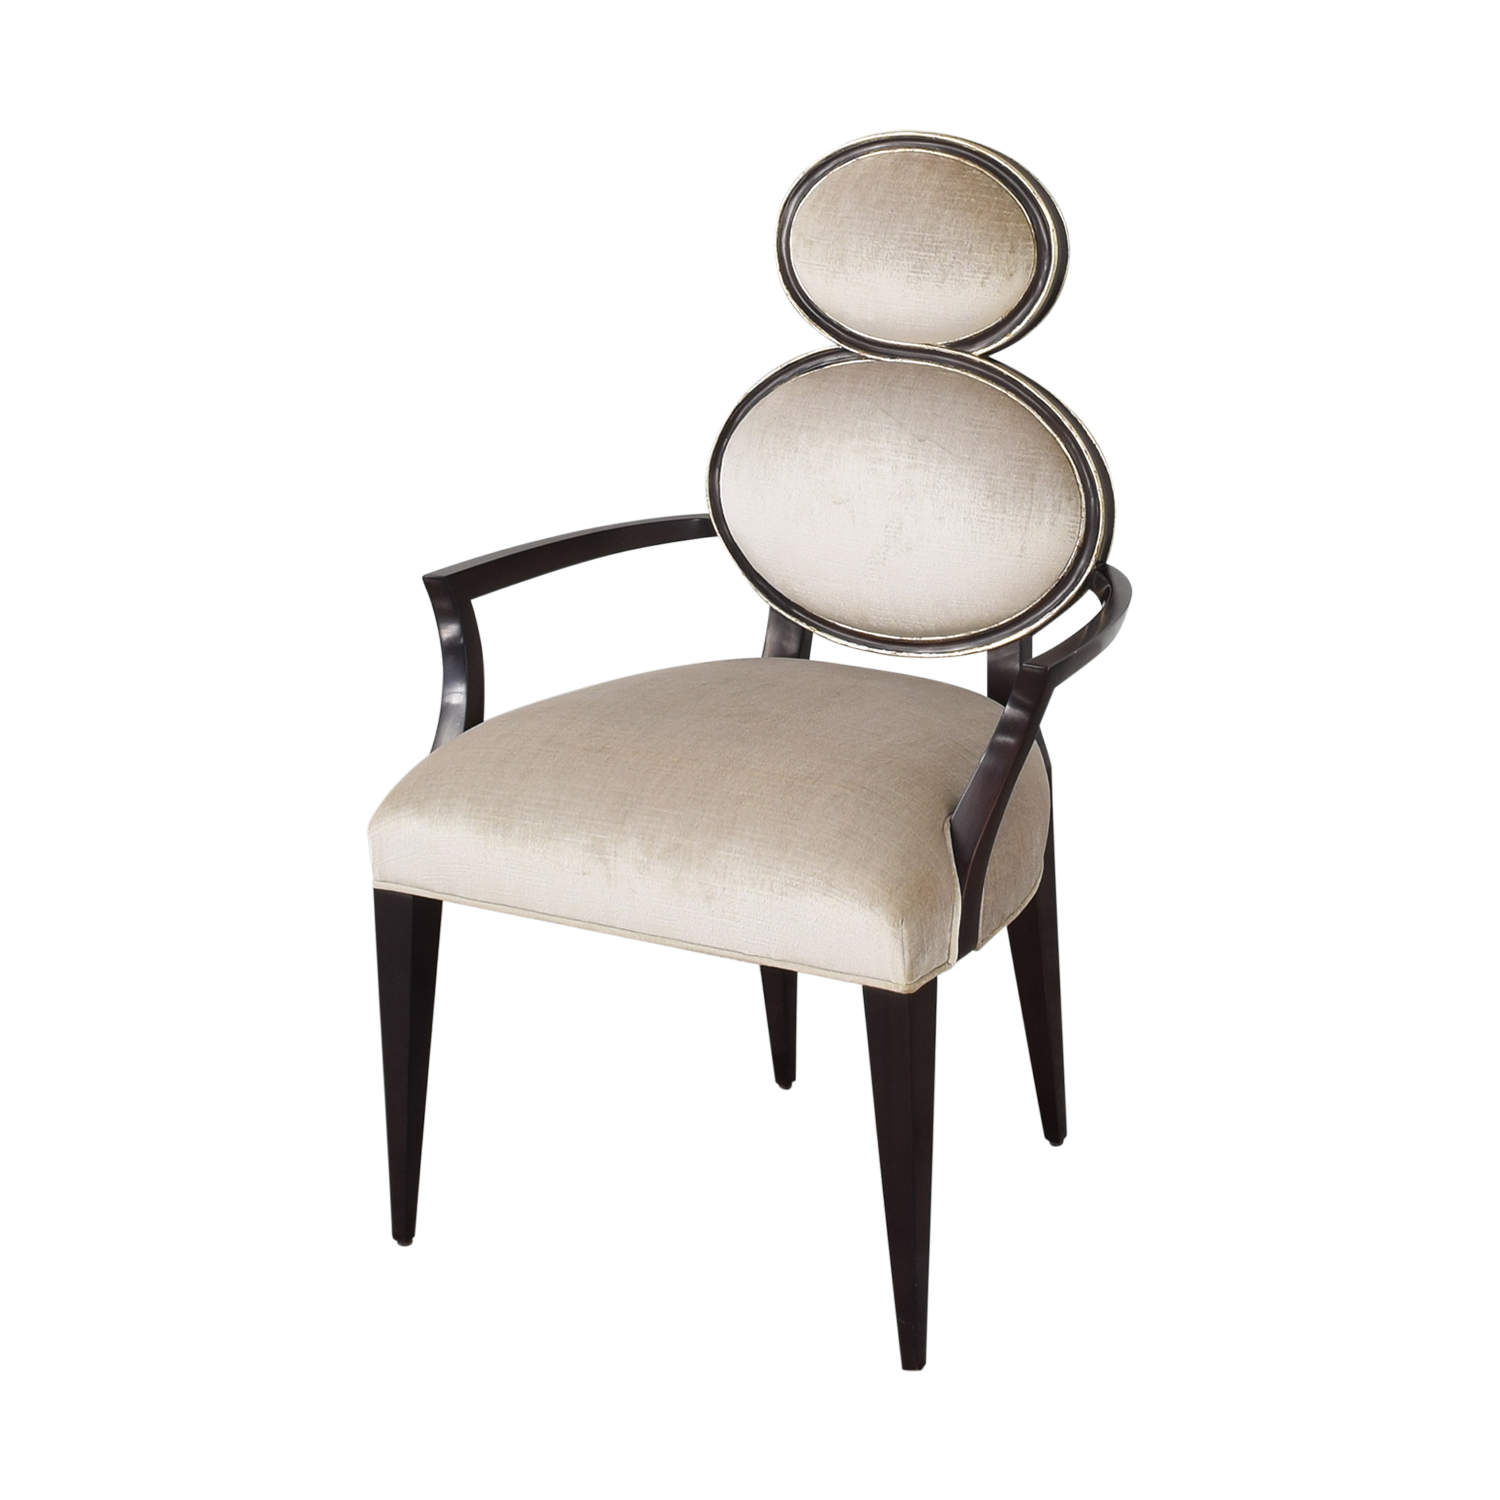 Christopher Guy Christopher Guy Figure 8 Chair price